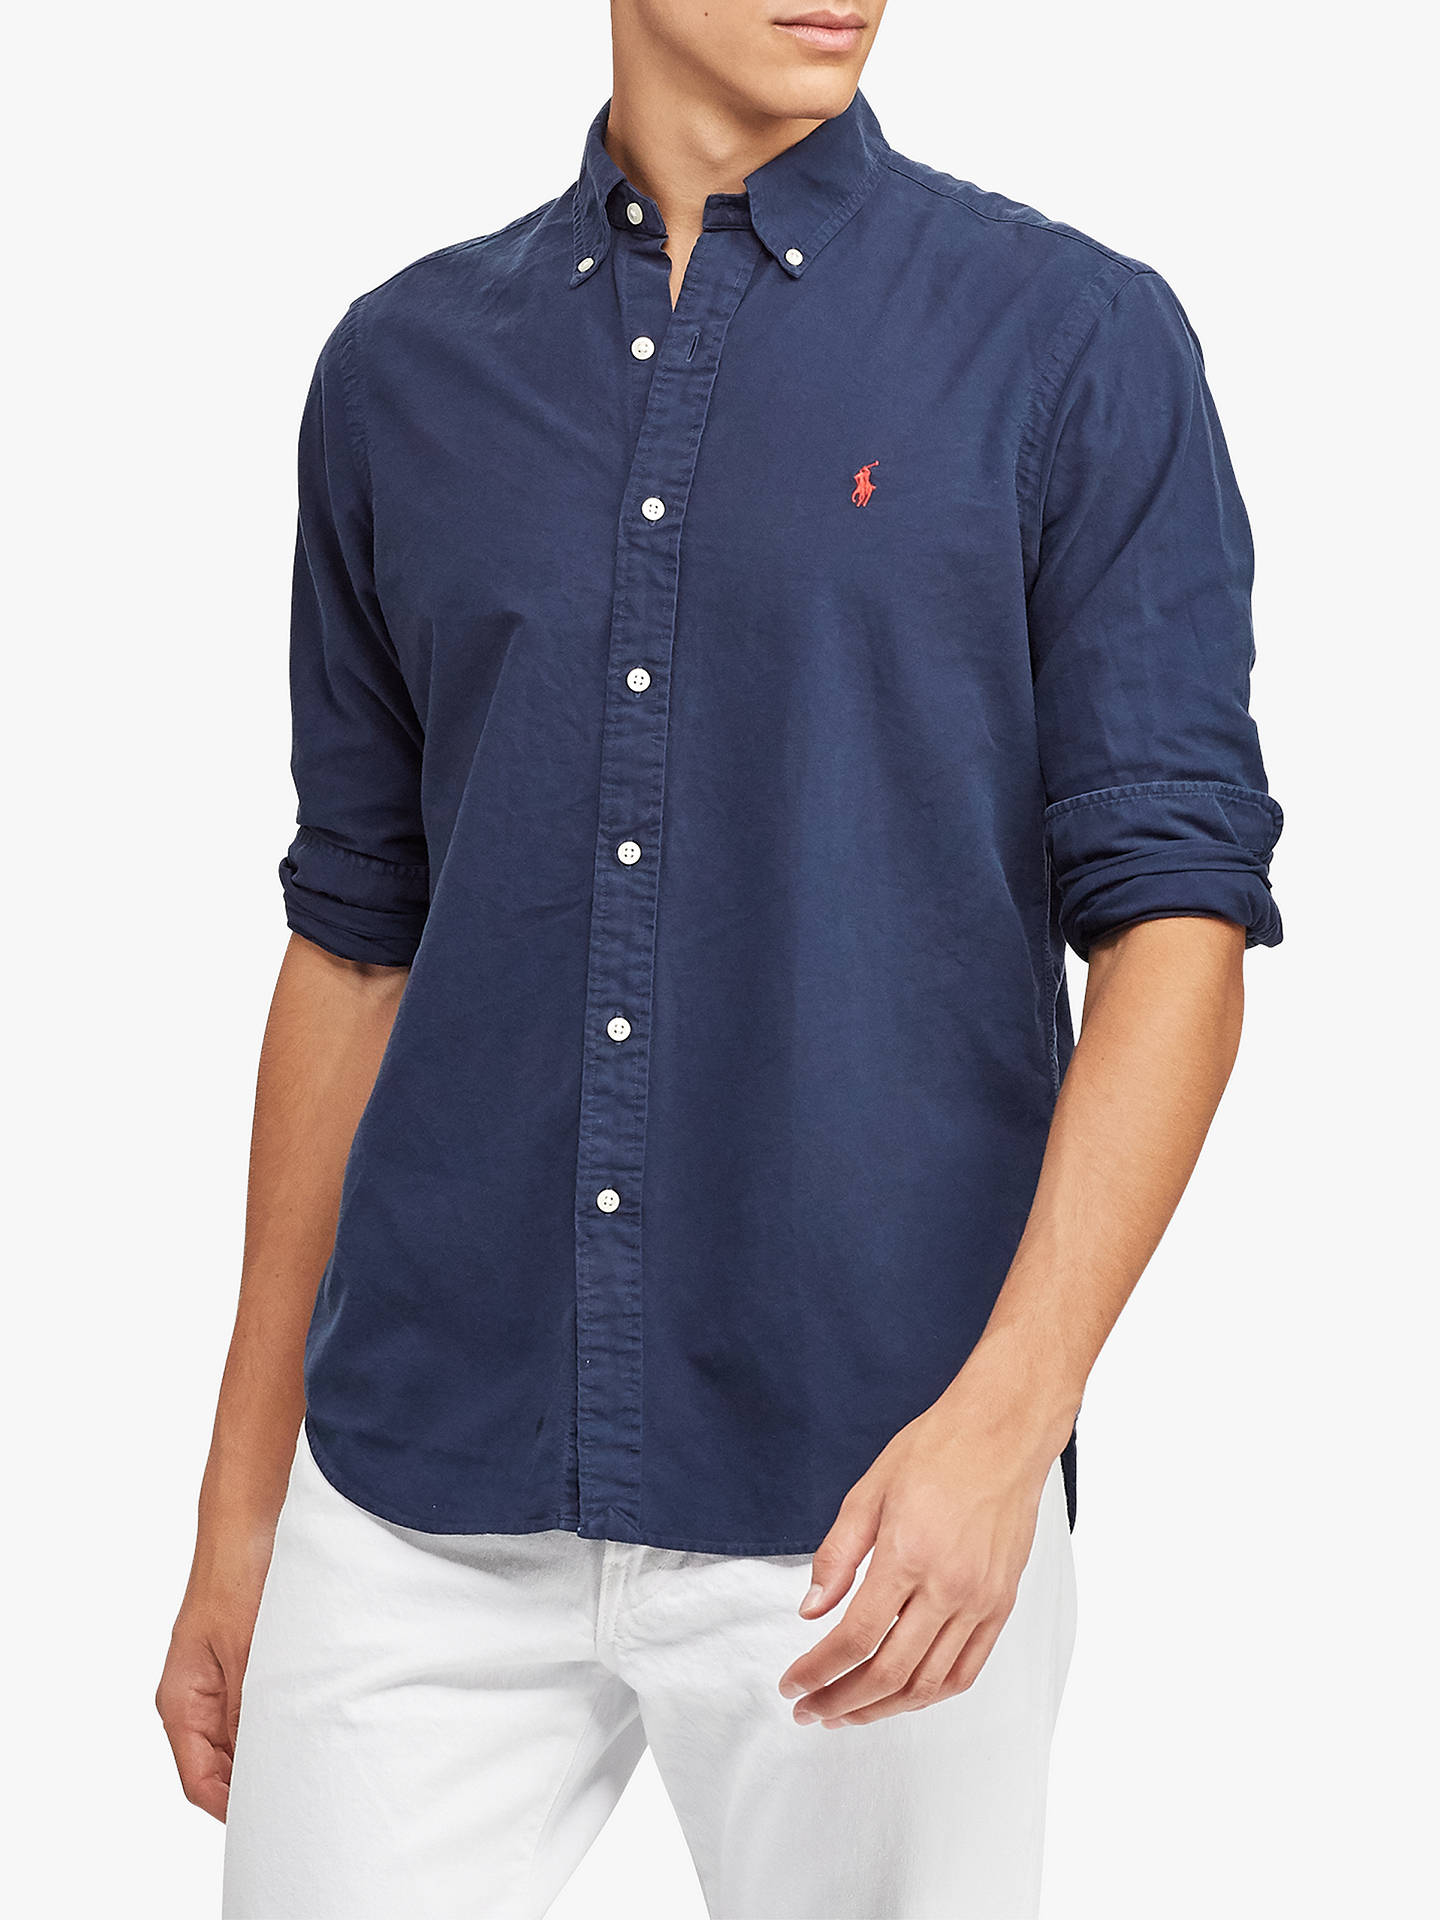 d6ba8ac3f Buy Polo Ralph Lauren Long Sleeve Slim Fit Button Down Shirt, Navy, M  Online ...